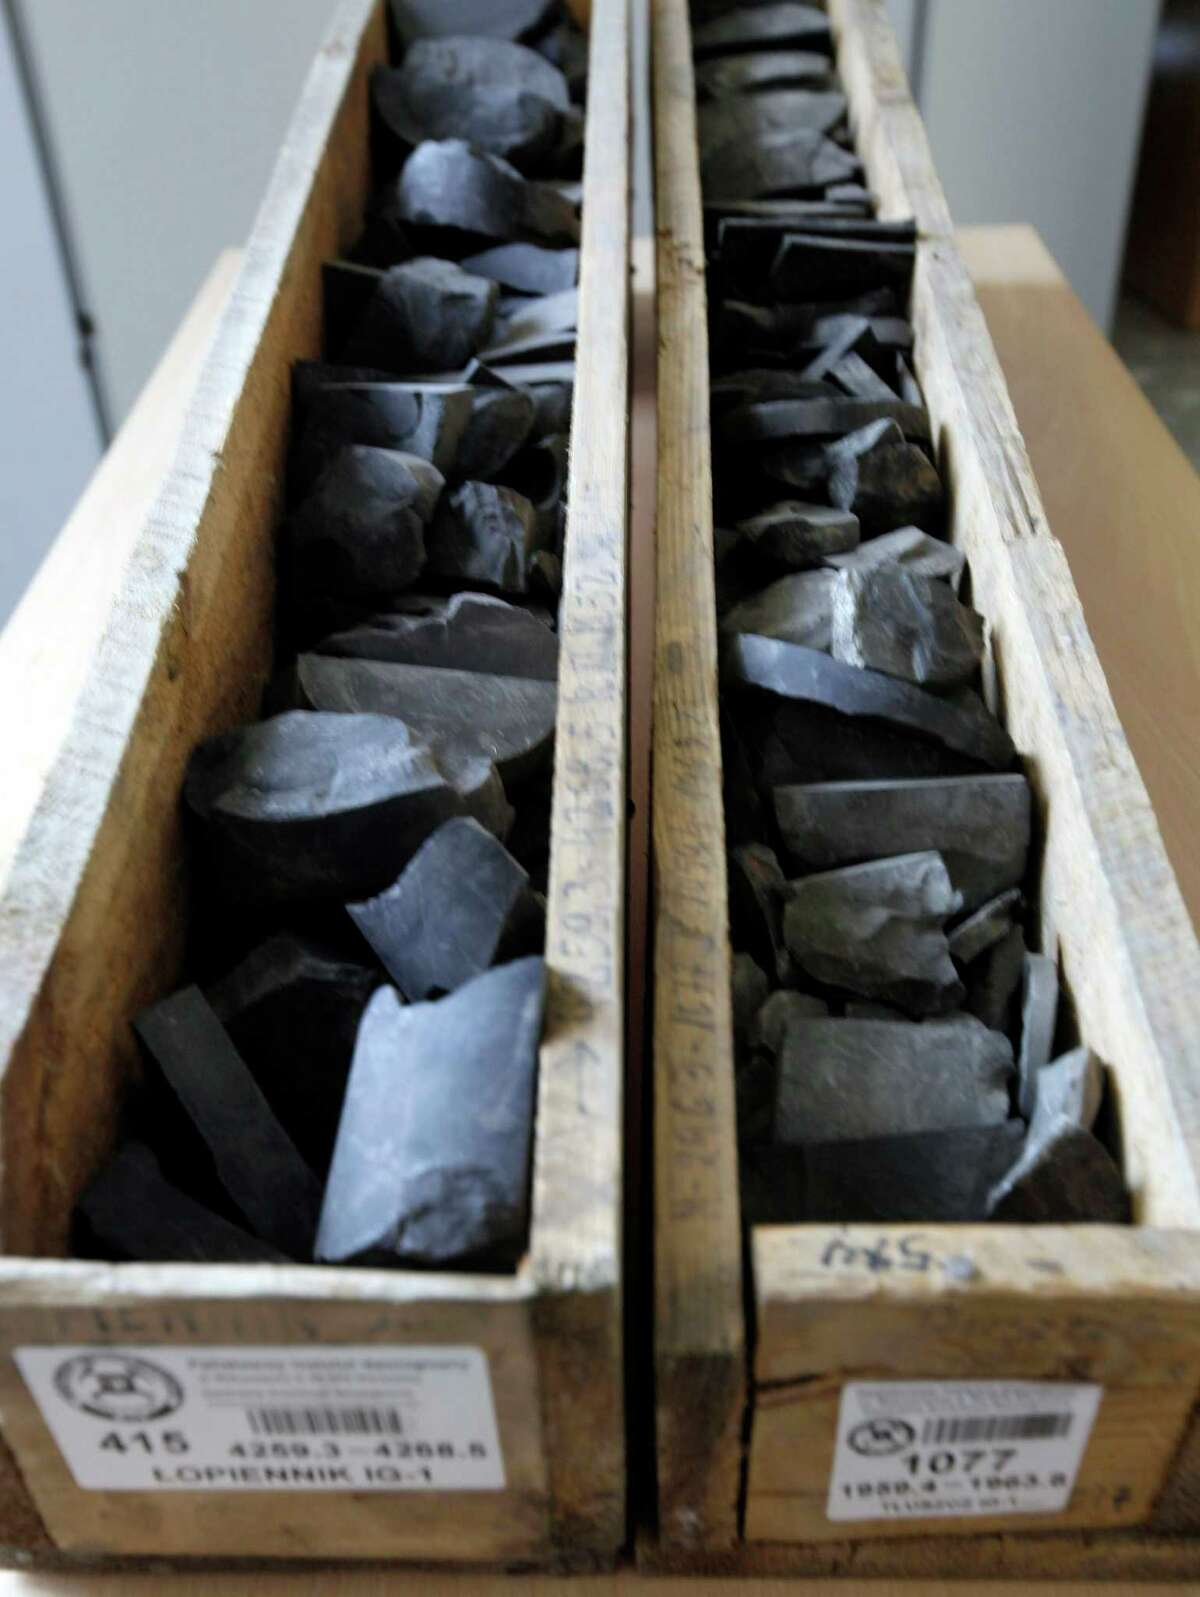 Samples of shale rocks recovered in central and eastern Poland are displayed at the State Geological Institute in Warsaw, Poland. Despite Europe's desire to loosen its reliance on Russian gas, the shale revolution has turned out to be a dud.